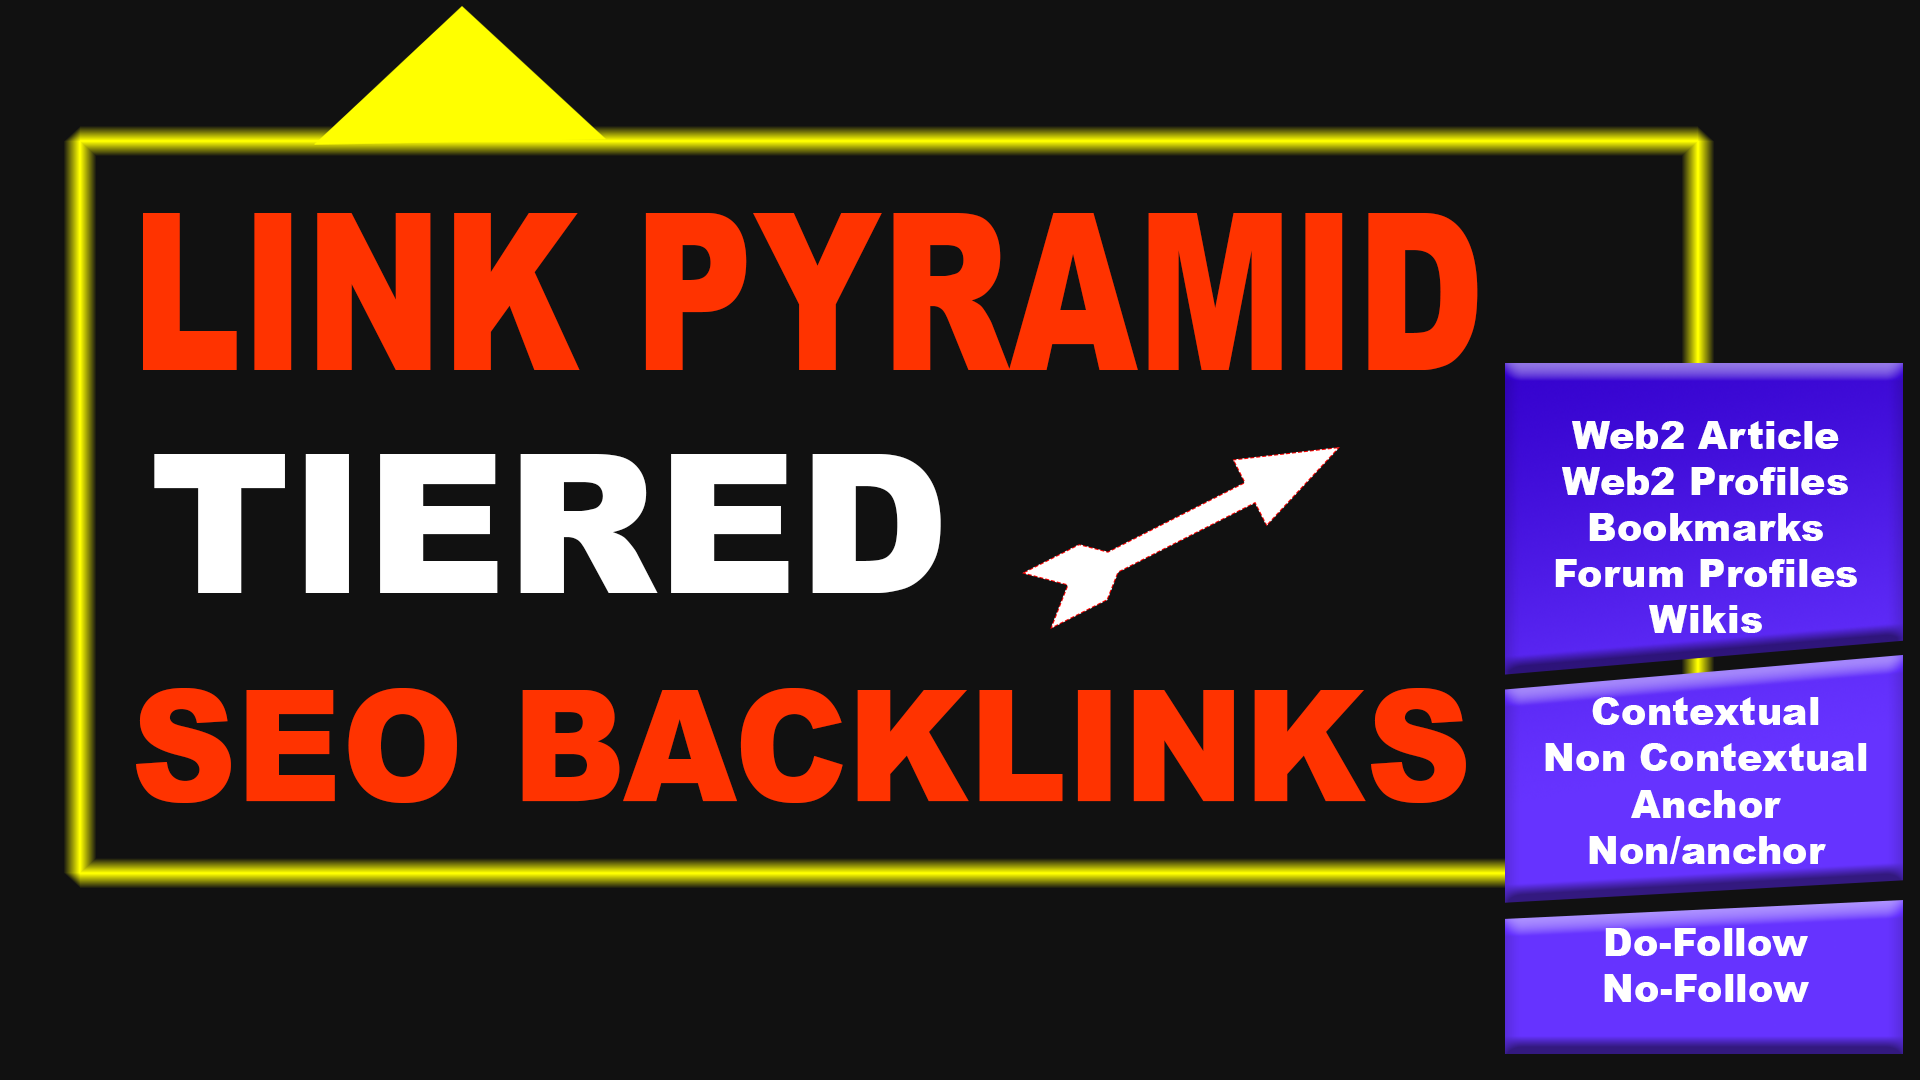 Build SEO Link pyramid tiered backlinks for your website